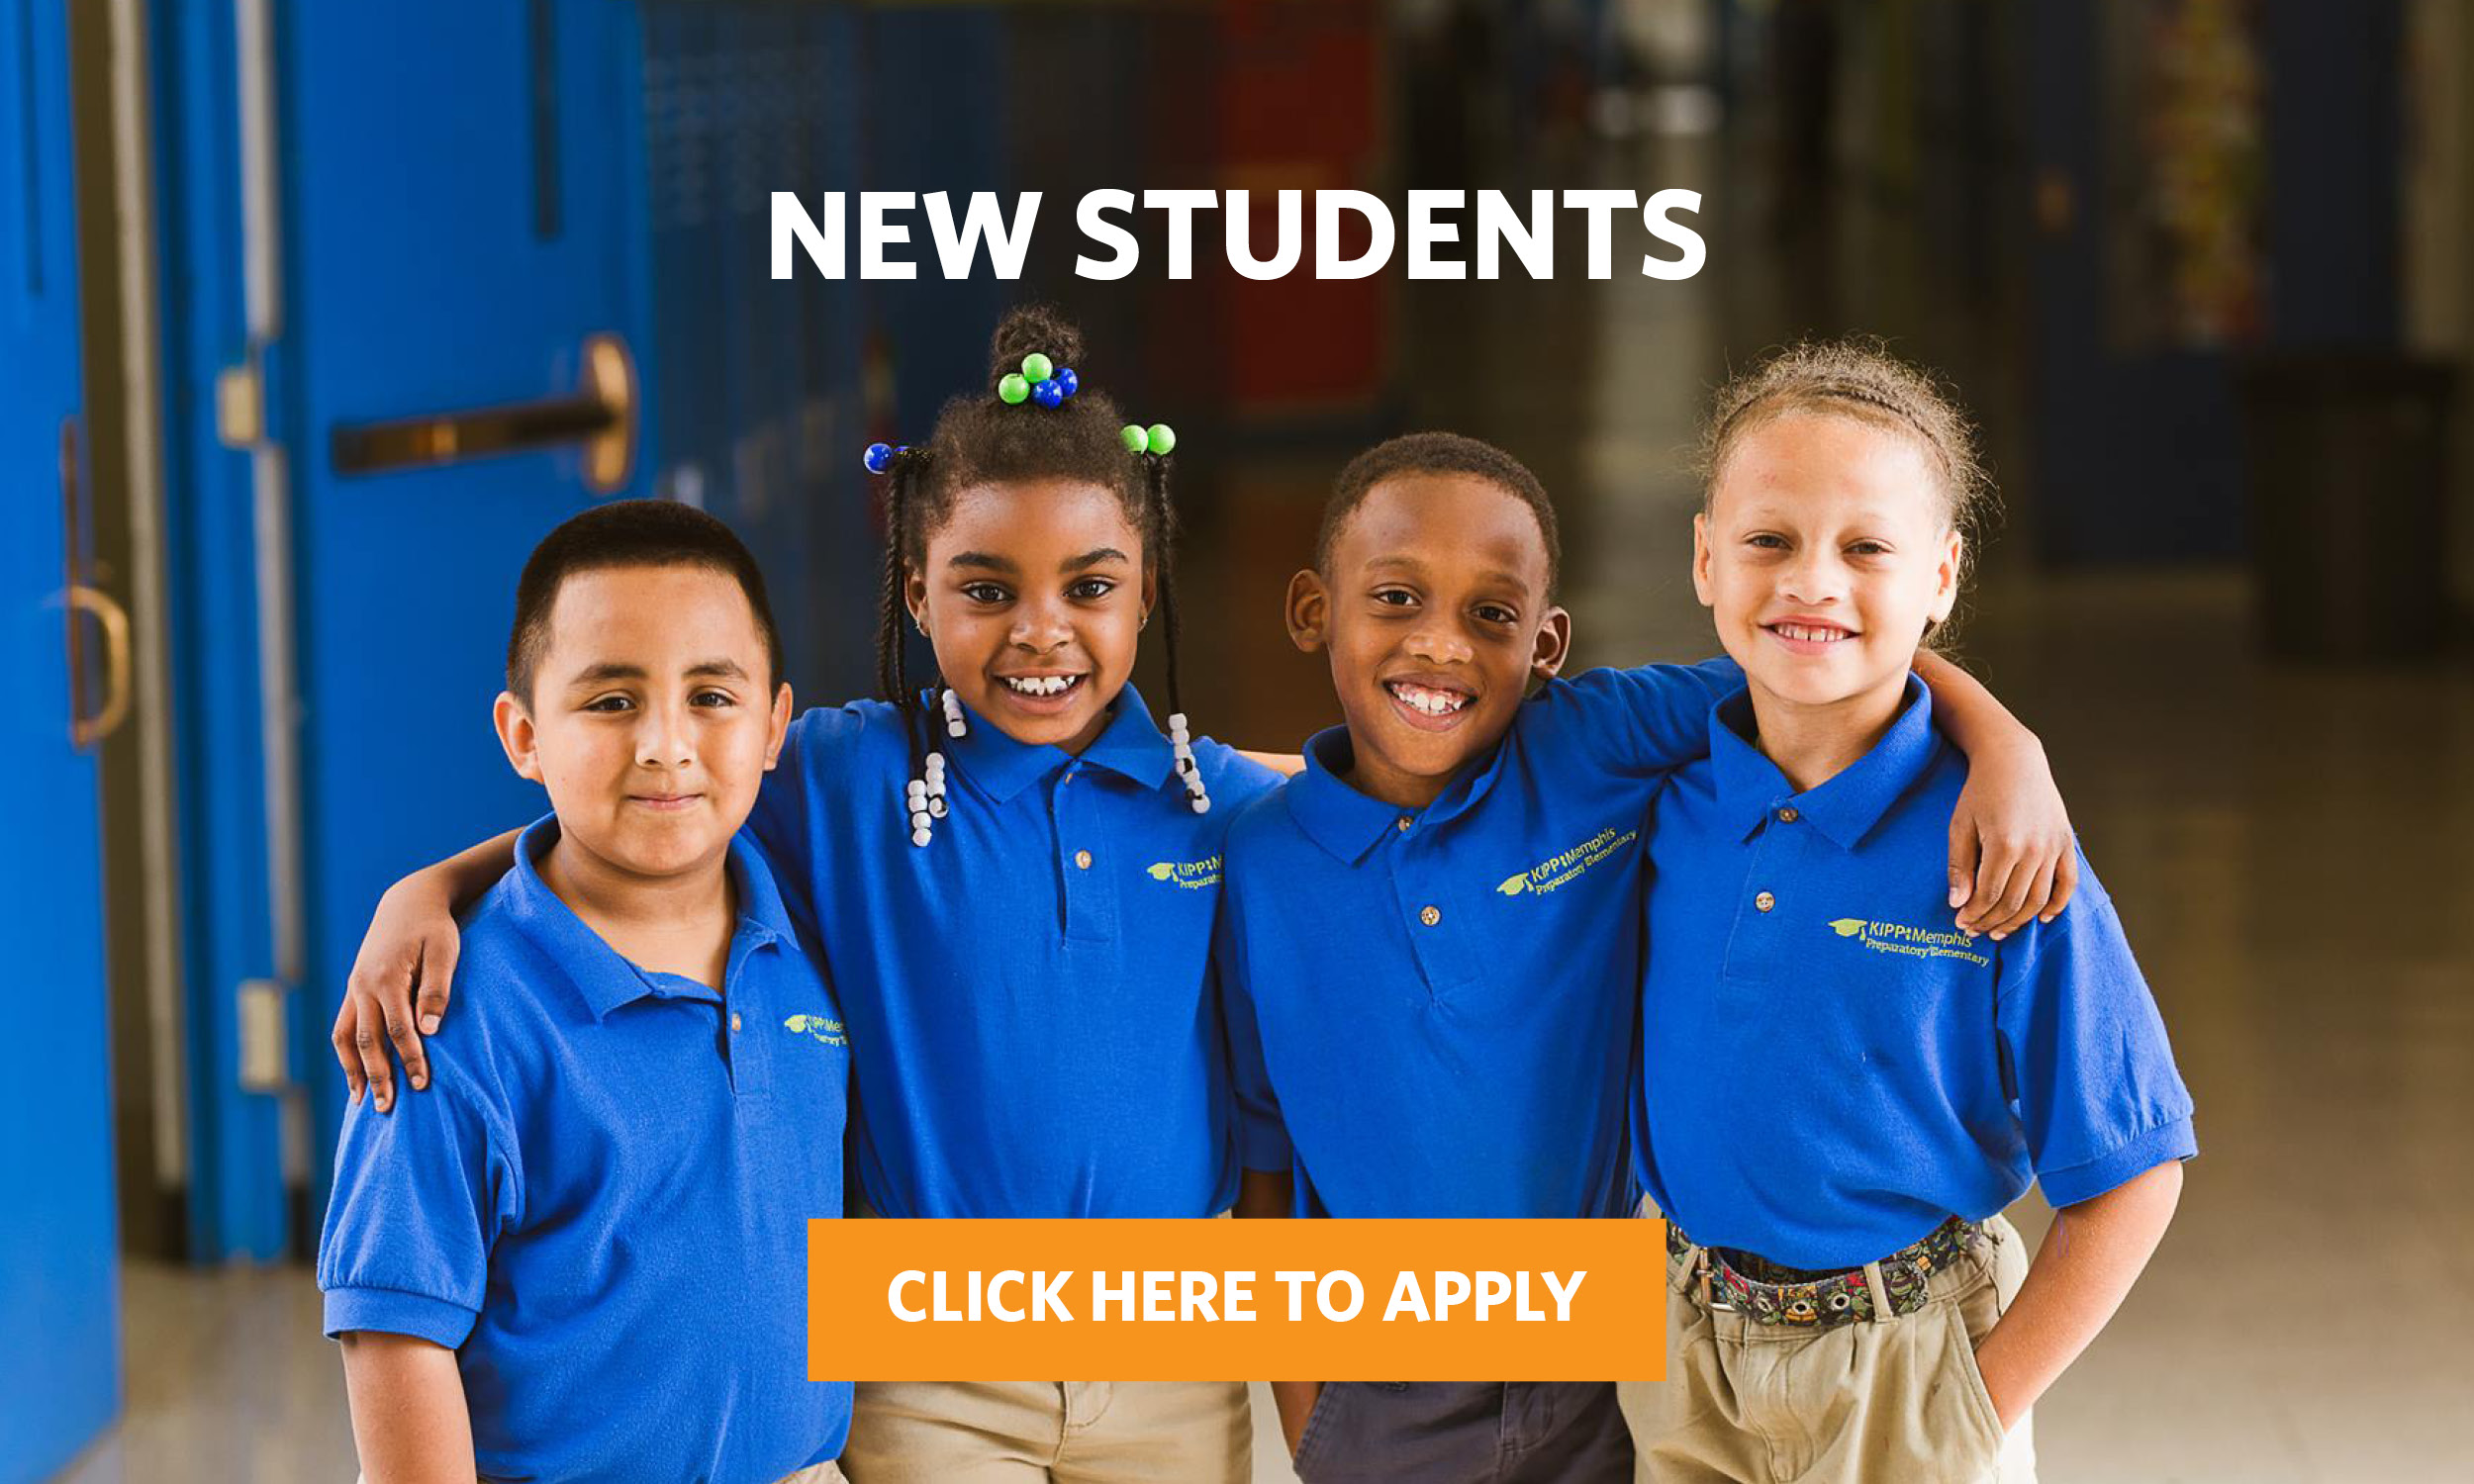 KIPP enroll now_2500x1500_New Students.jpg